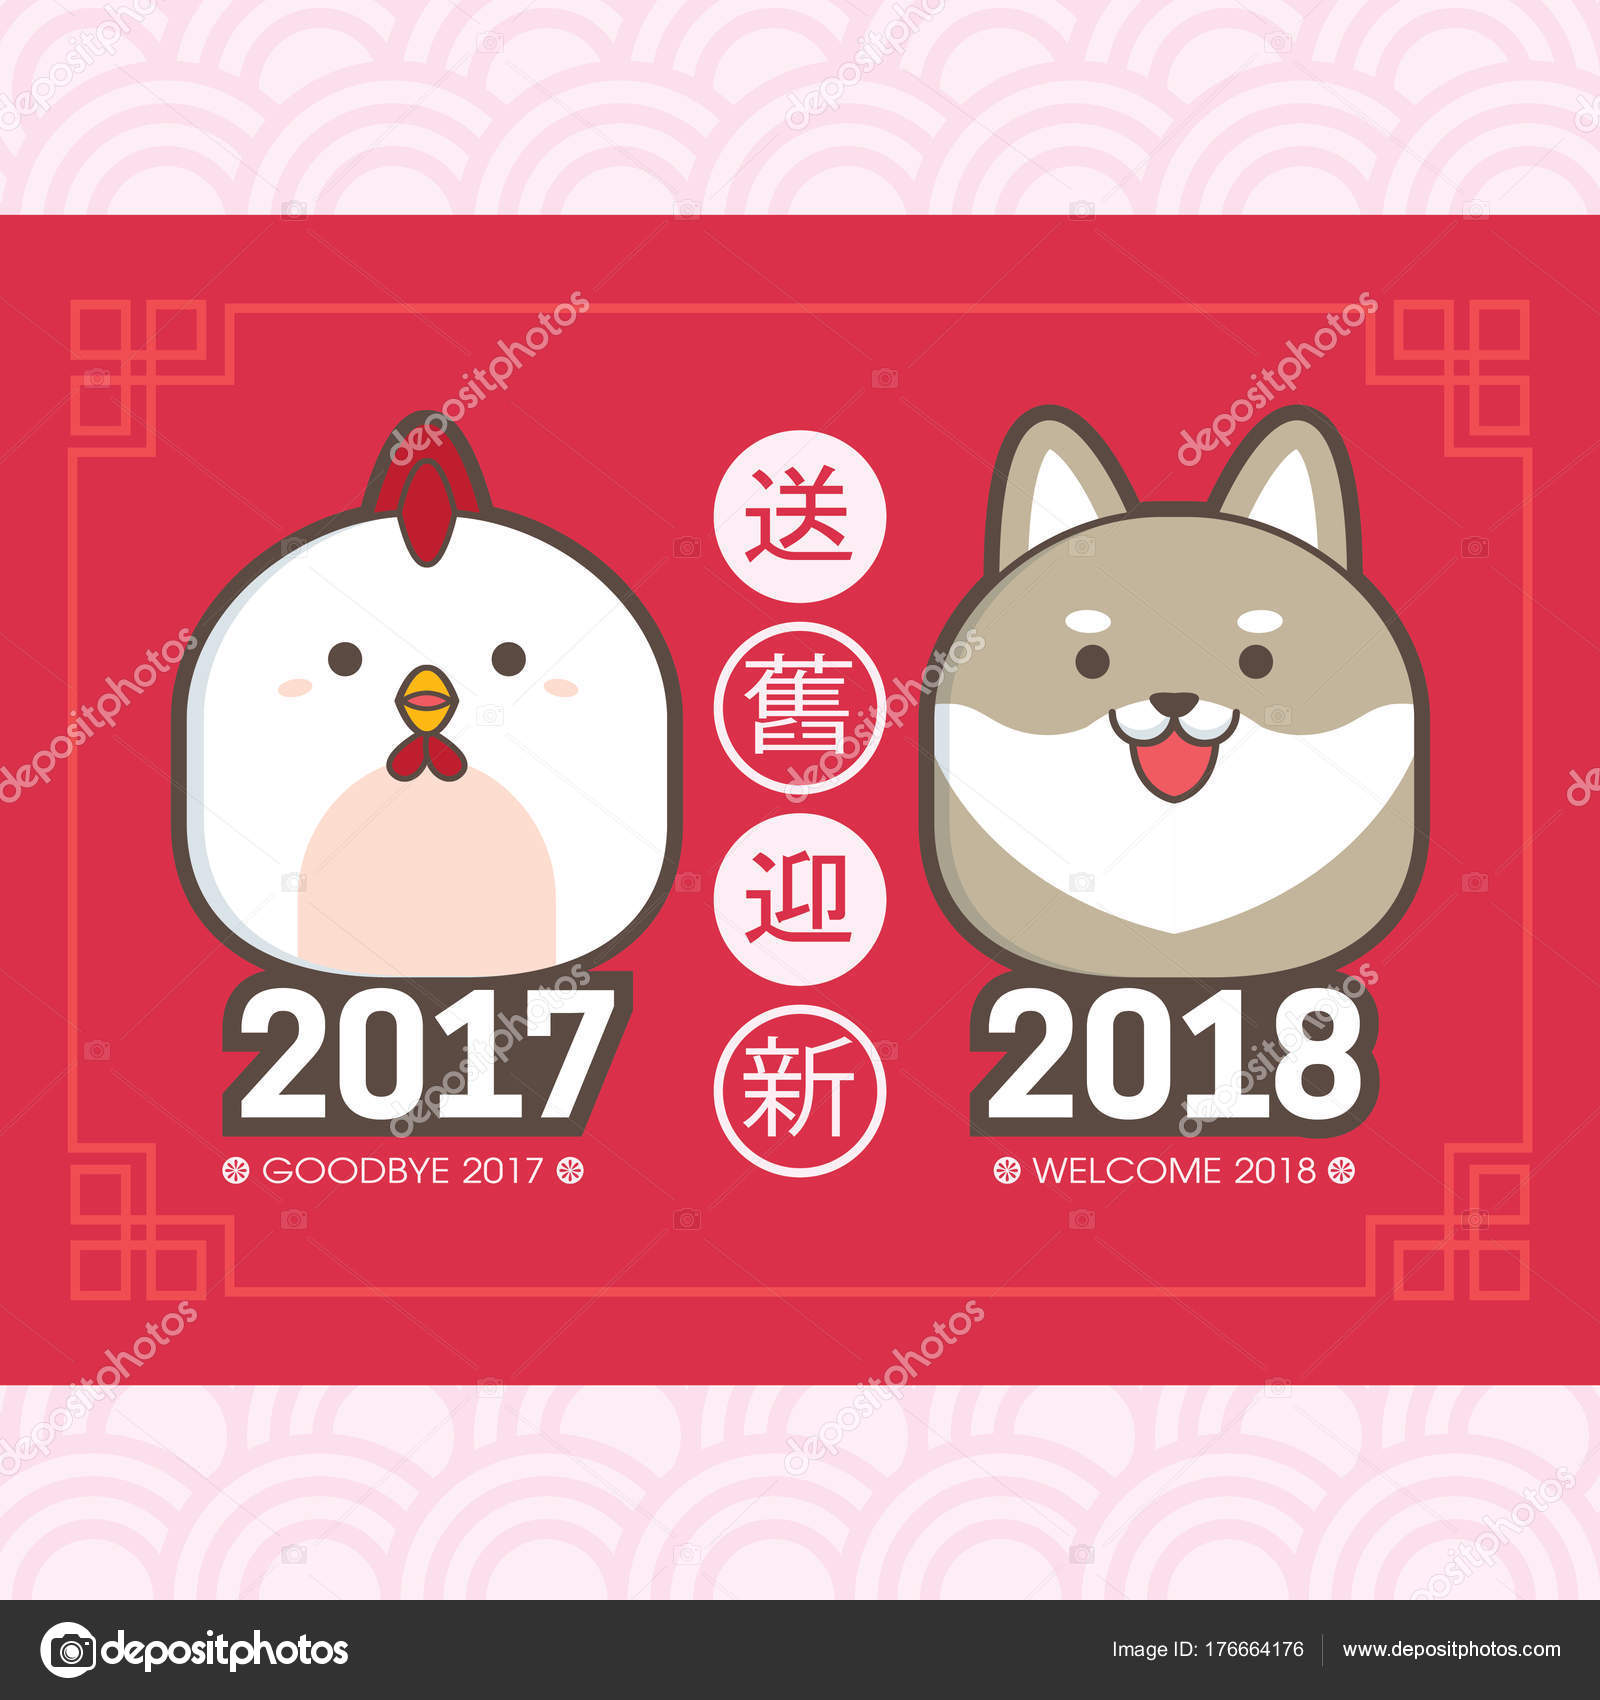 2018 Chinese New Year Greeting Card Template Cute Chicken Puppy